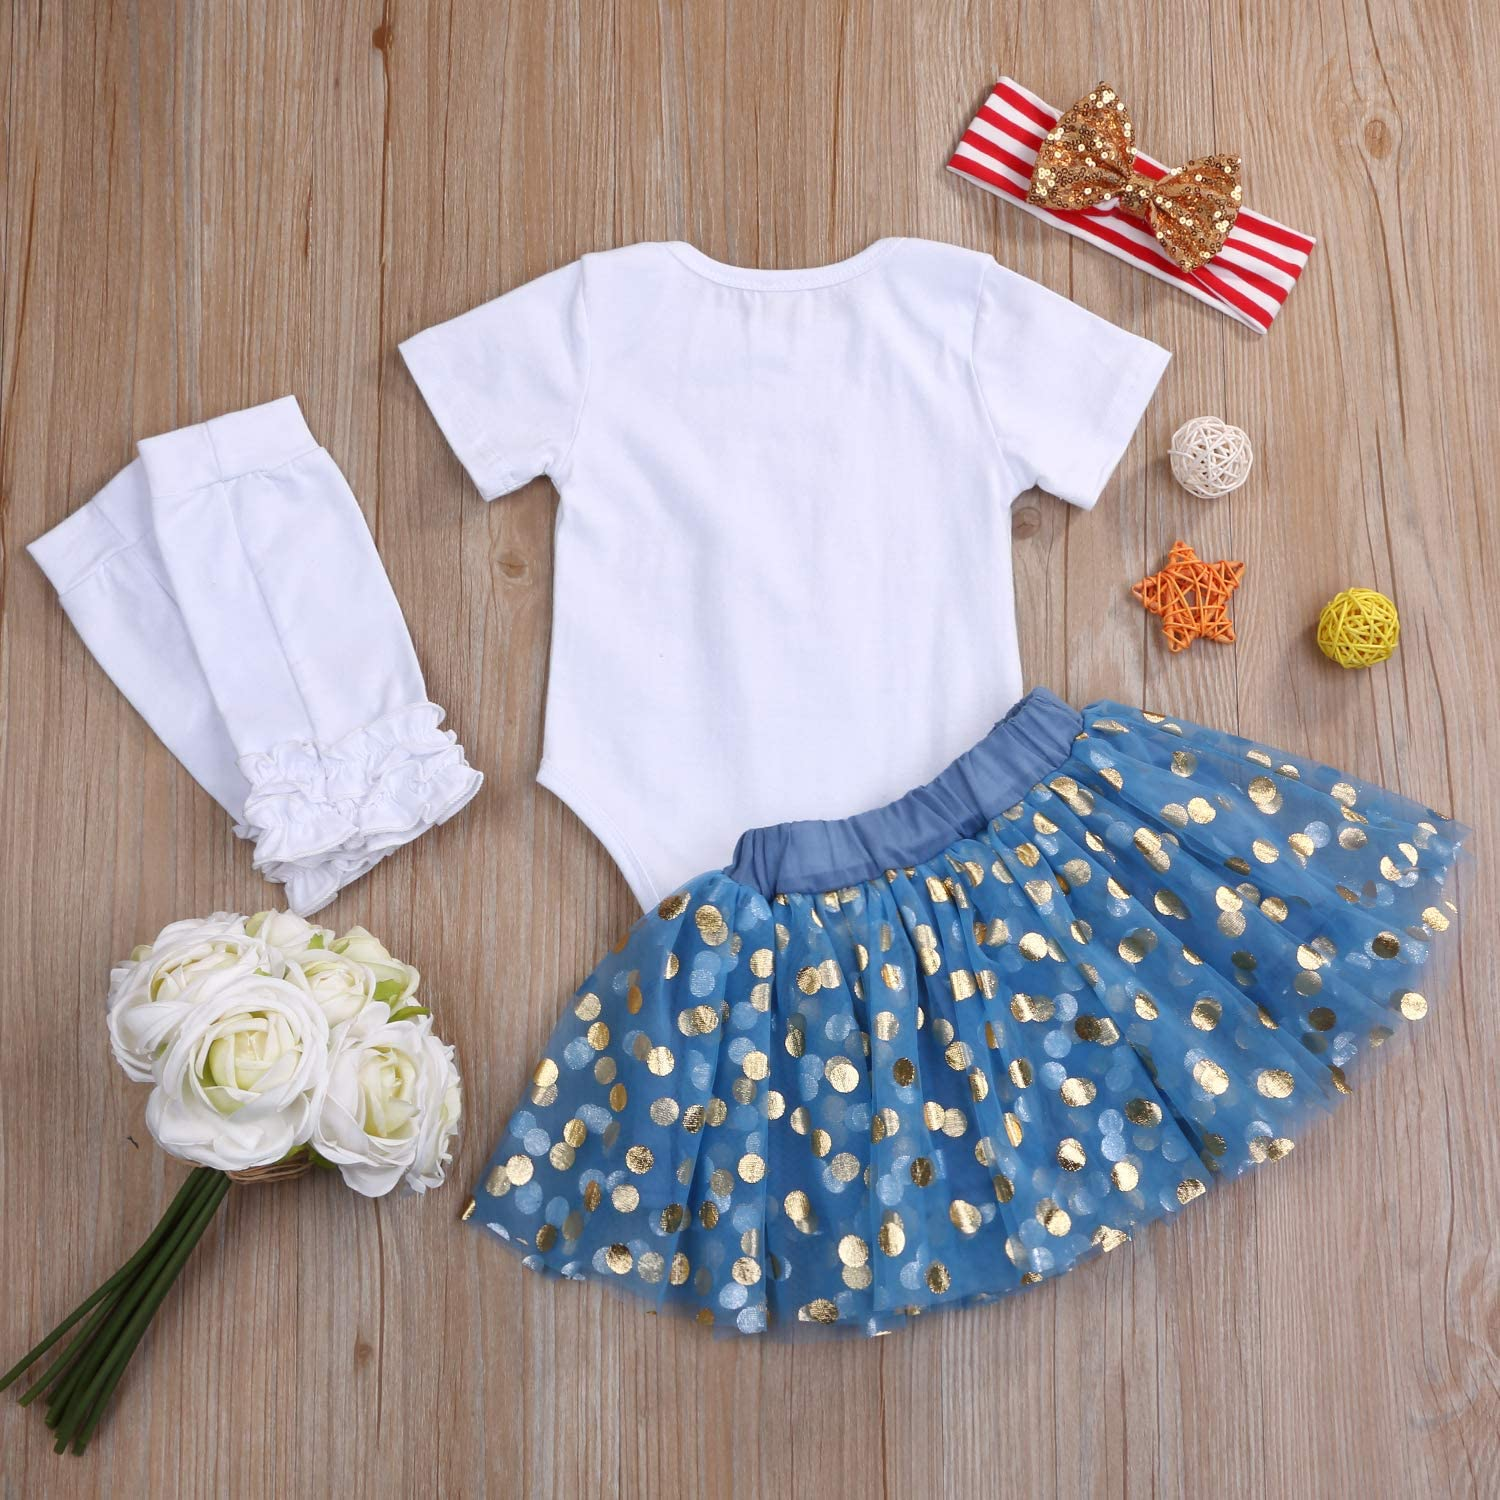 Baby Girl My First 4th of July Outfits Short Sleeve Romper+Tutu Skirt+Headbands 4PCS Clothes Set